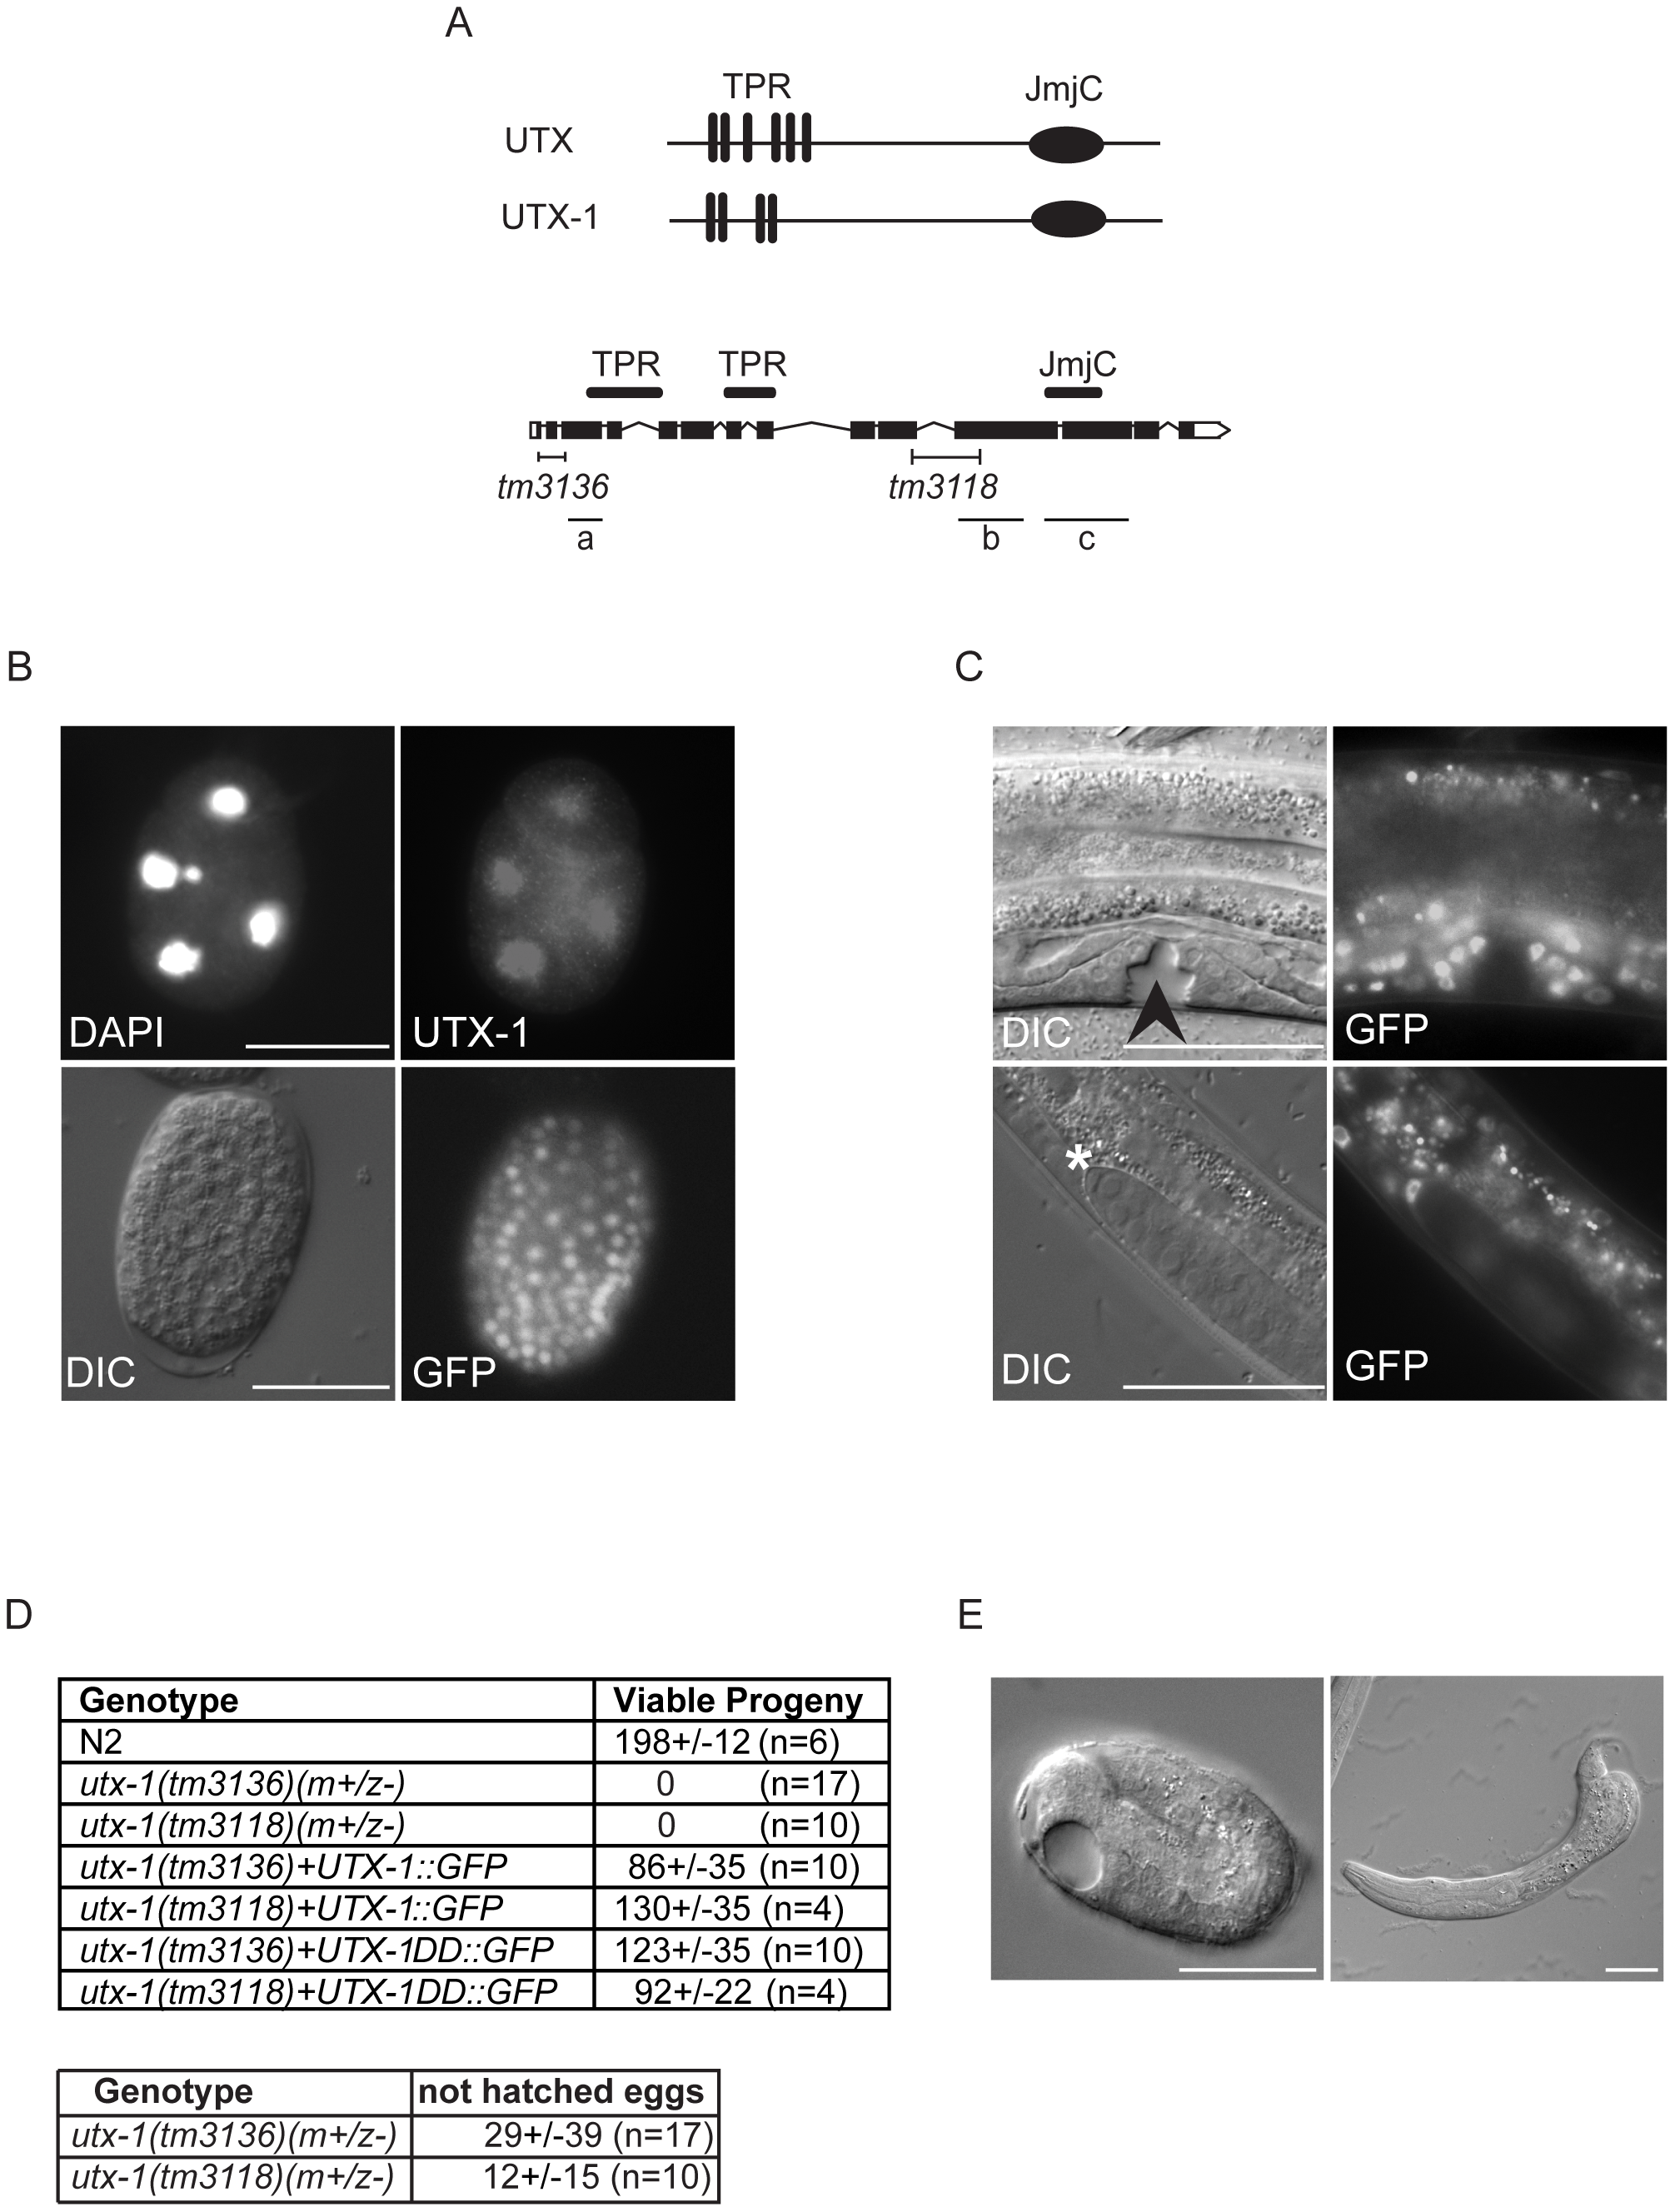 UTX-1 expression and <i>utx-1</i> embryonic phenotypes.